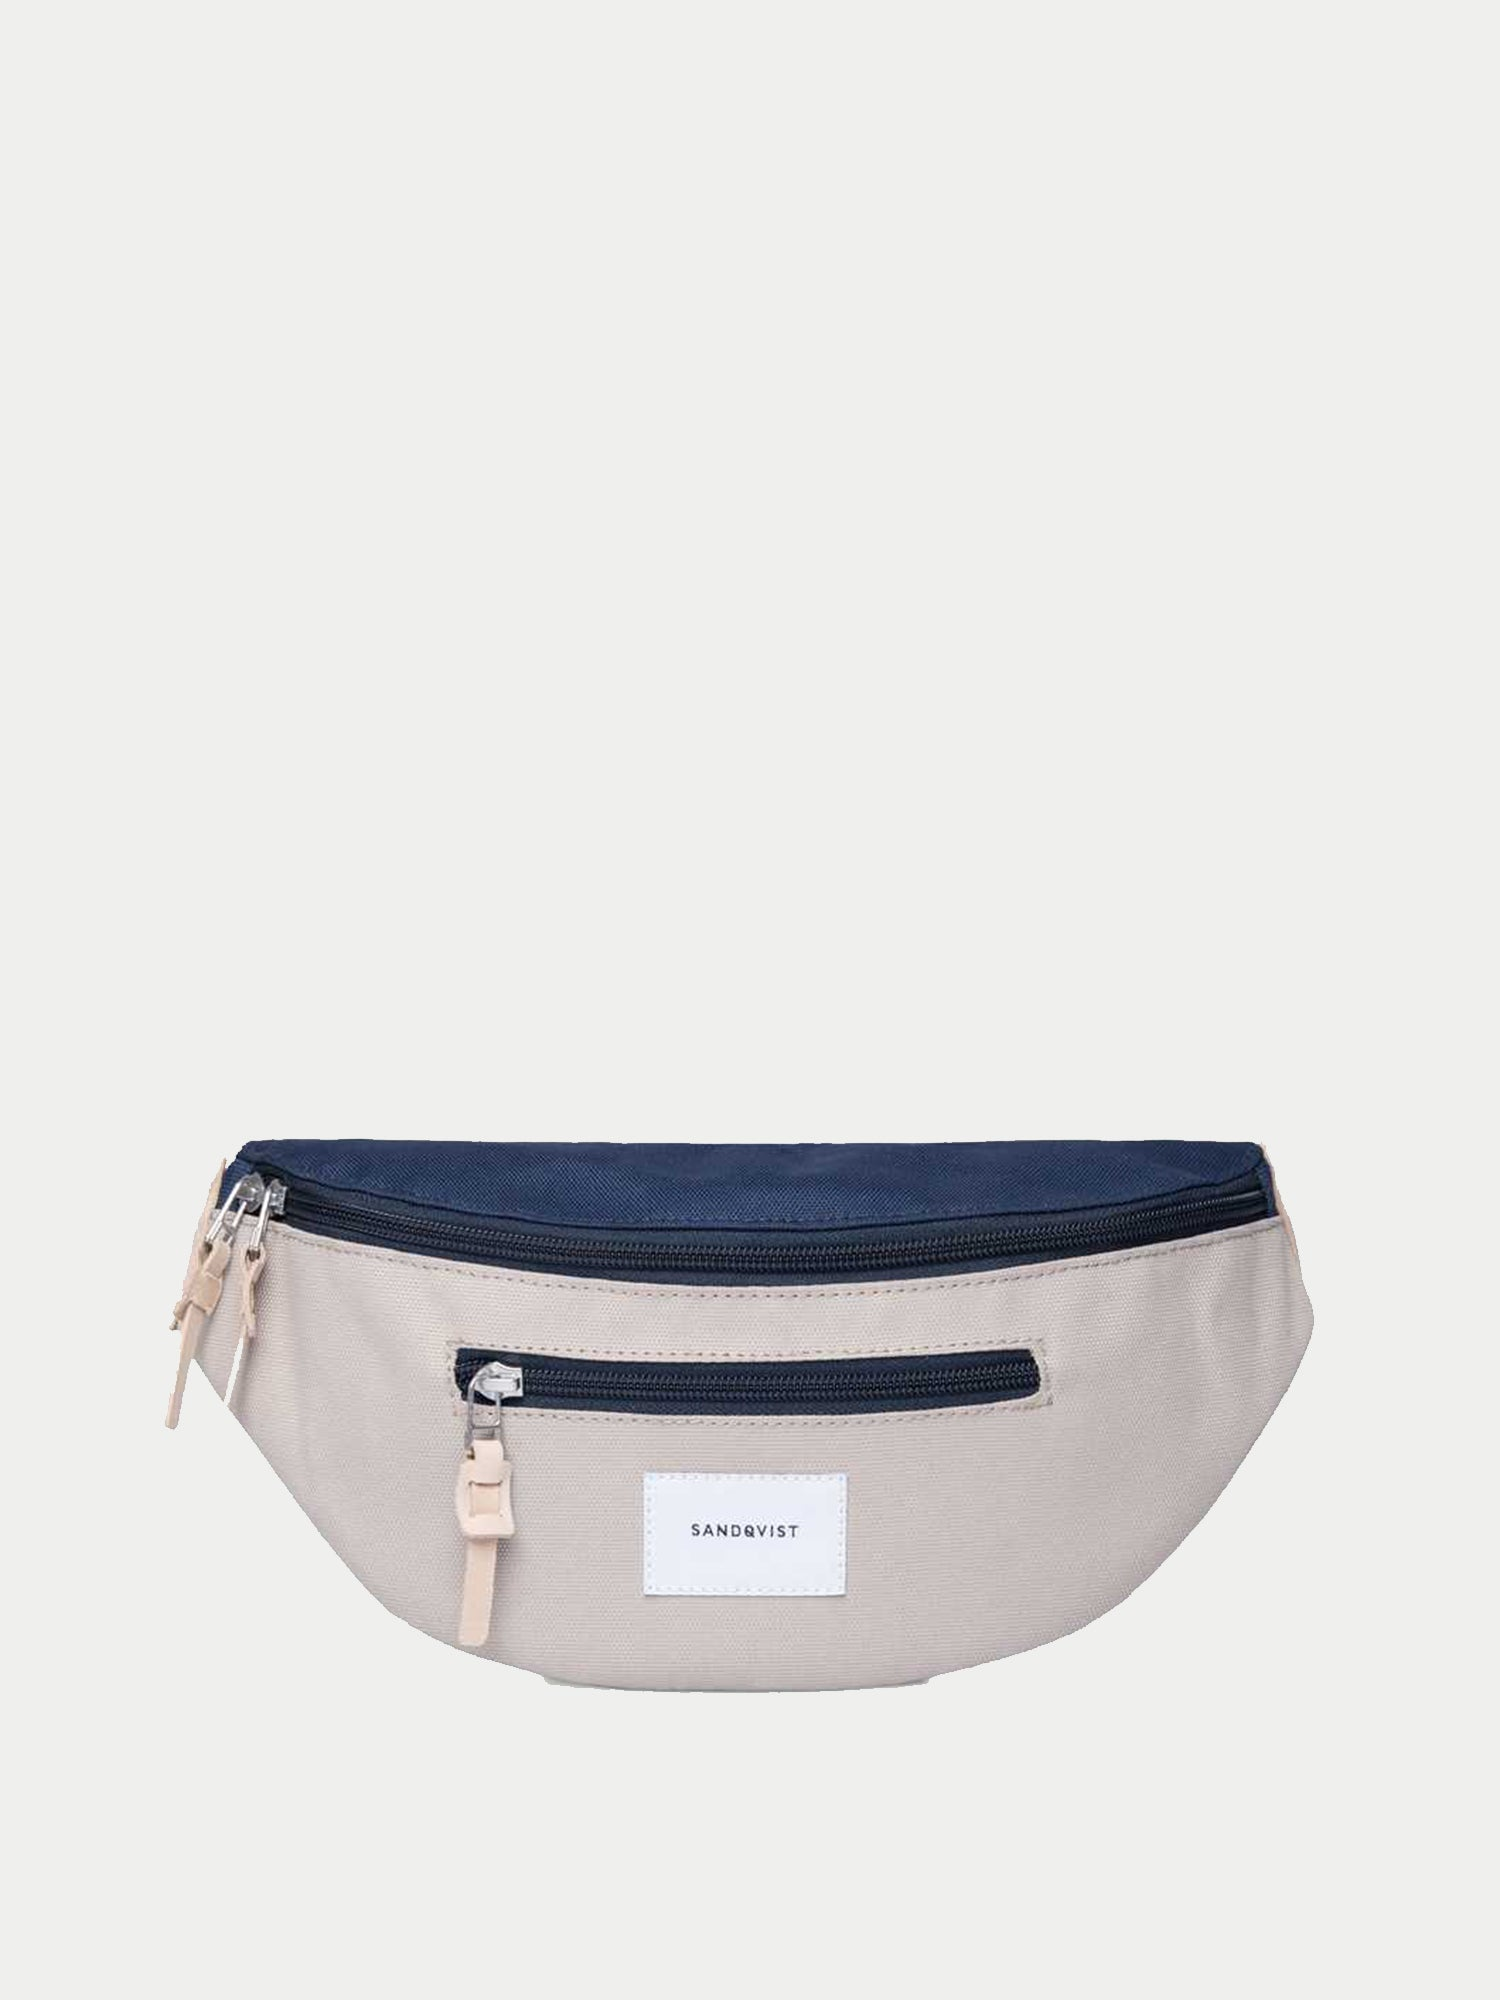 Sandqvist Aste Bum Bag (Beige & Blue)